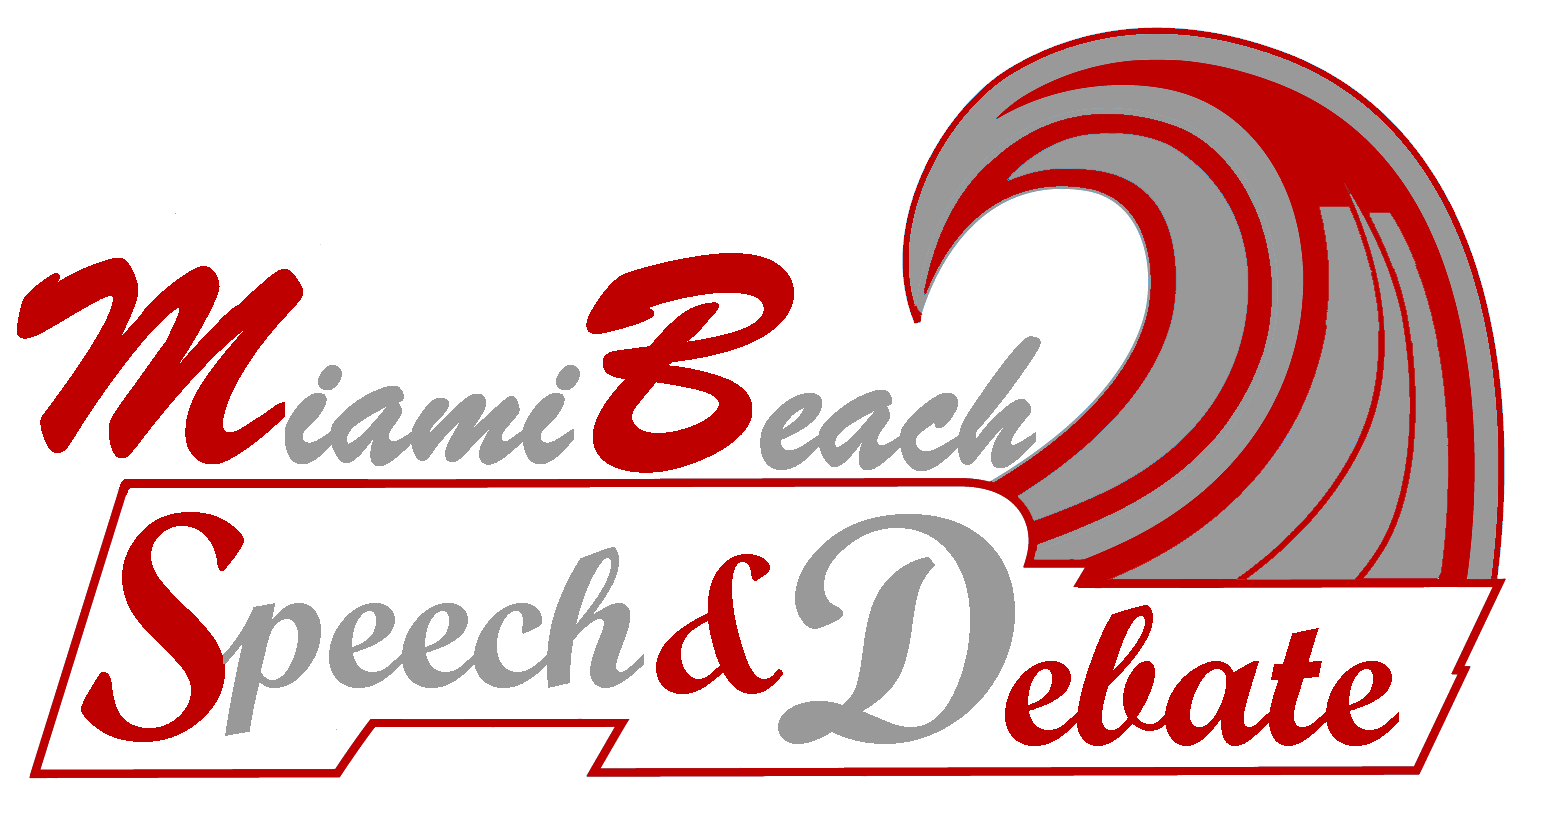 Speech and Debate team logo